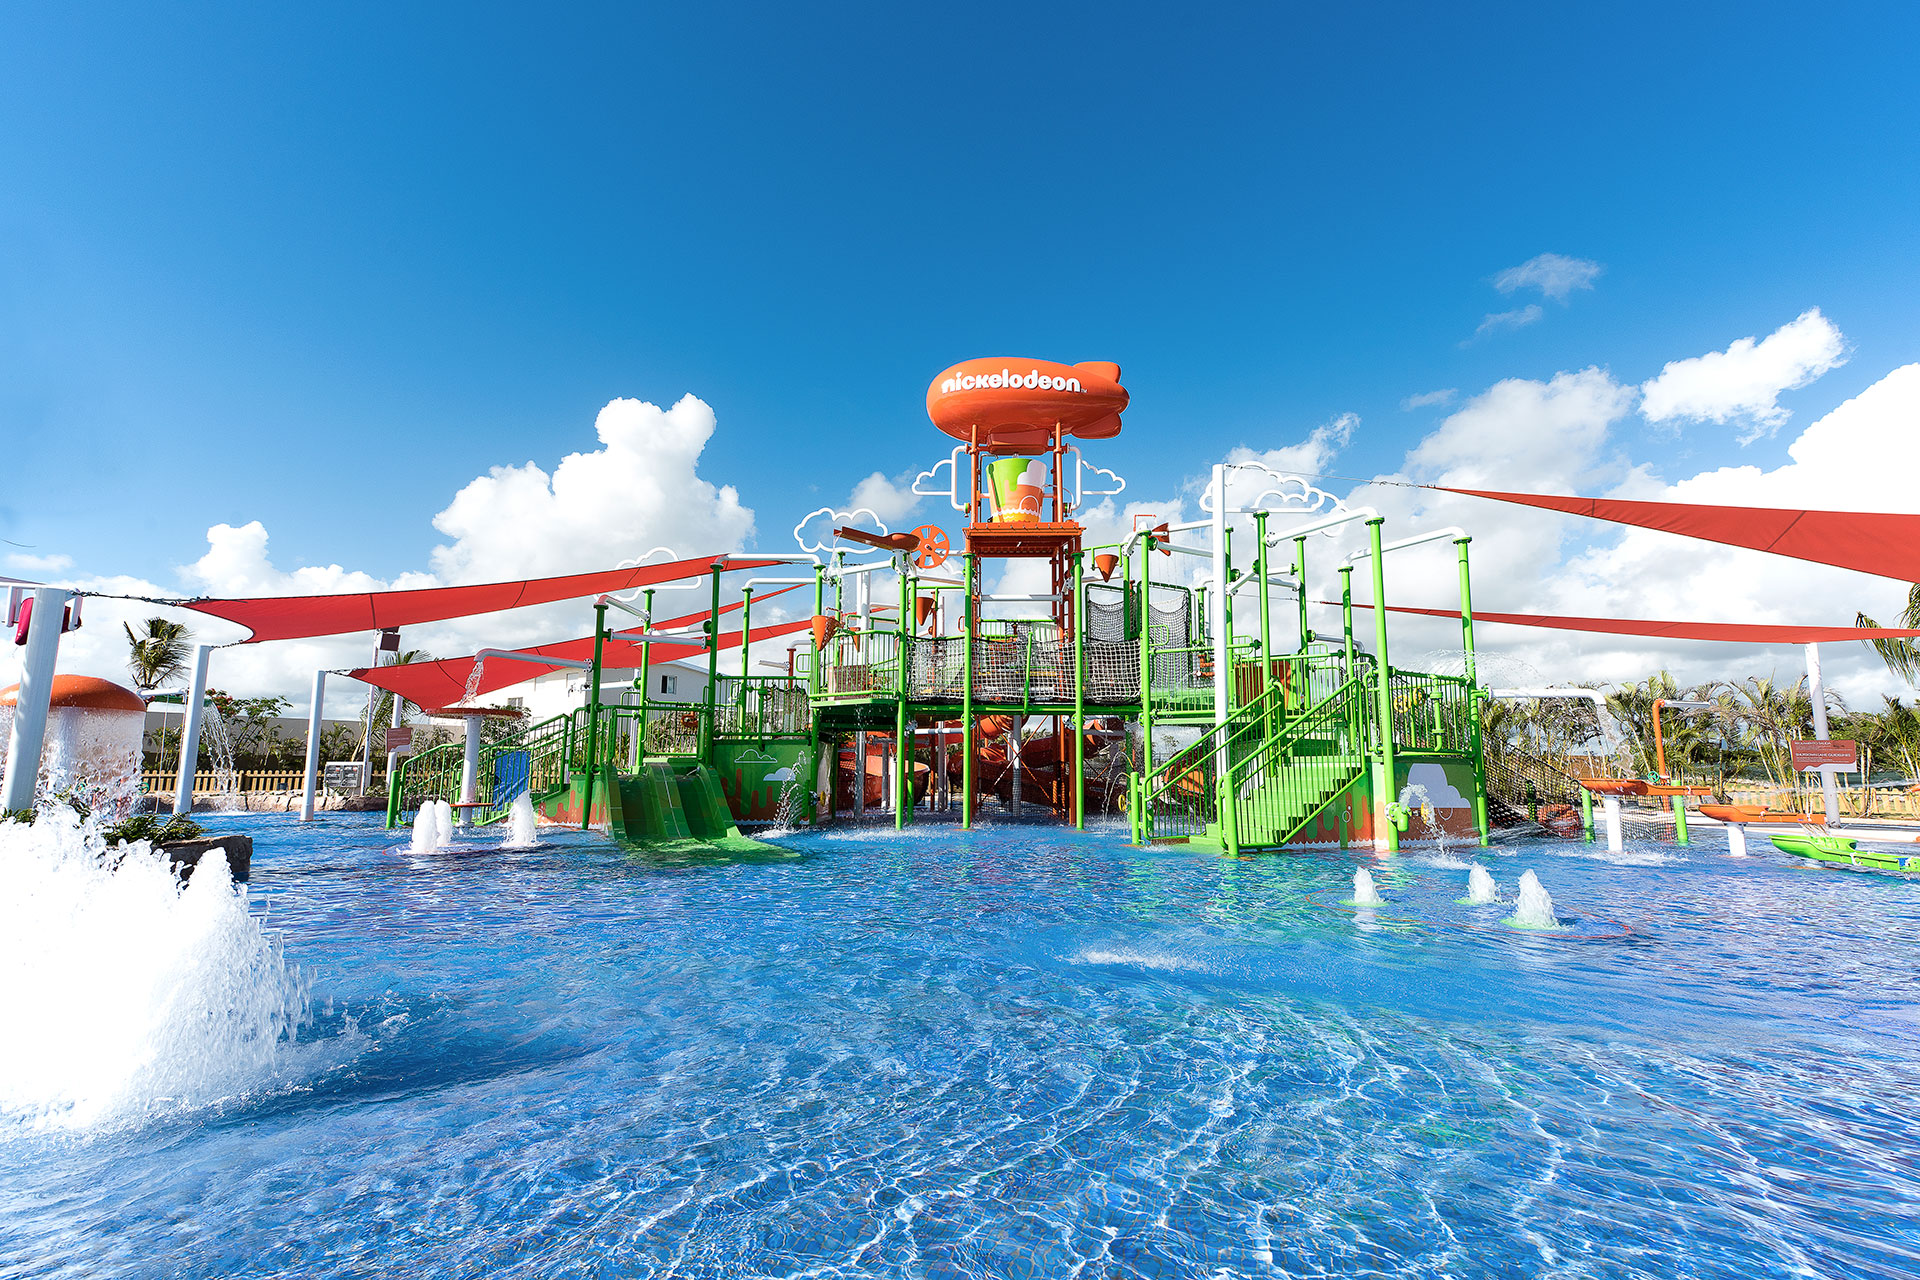 Nickelodeon Hotels & Resorts Punta Cana in the Dominican Republic